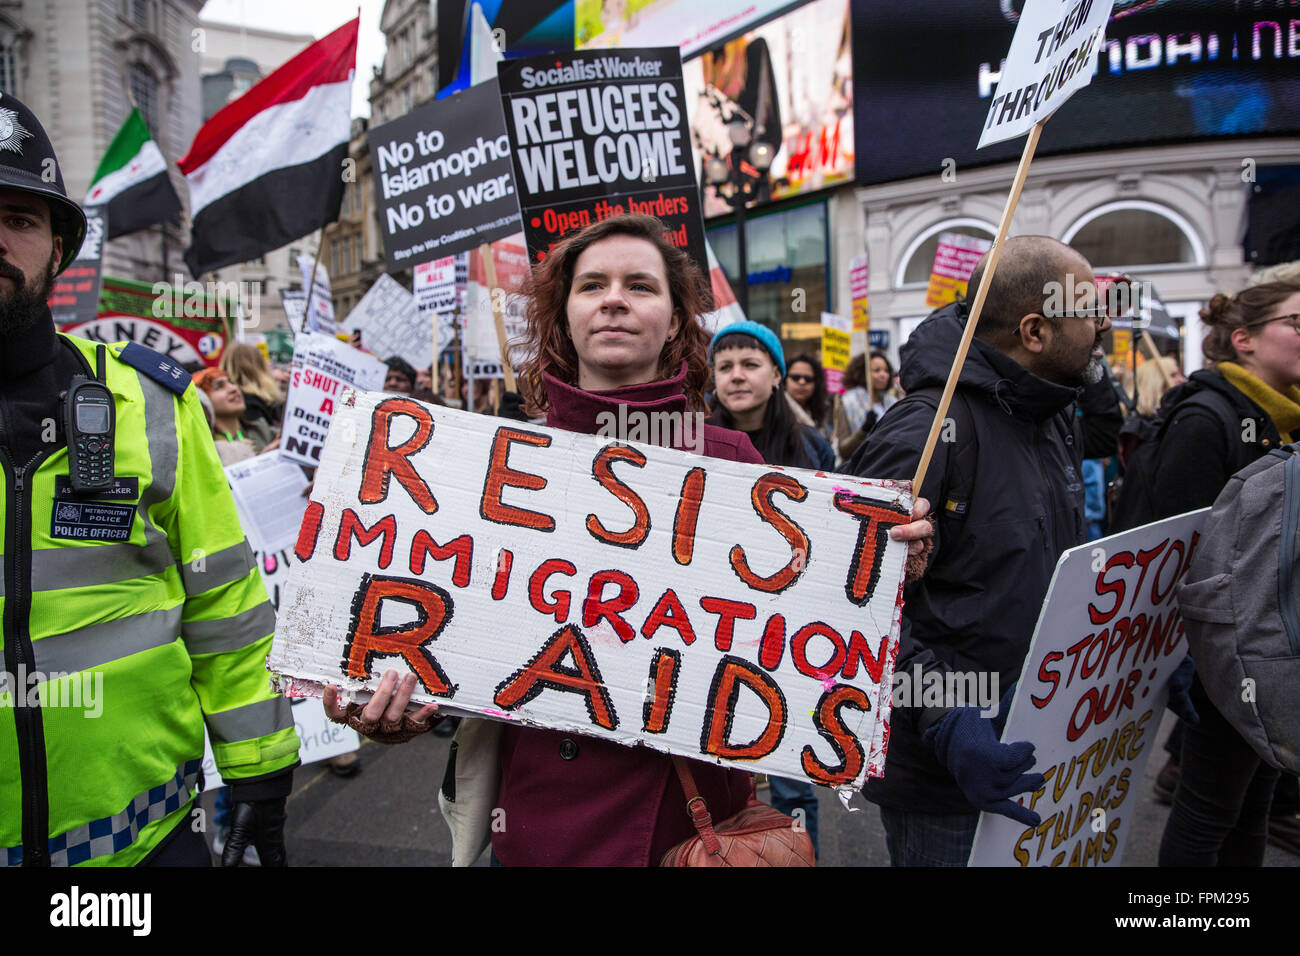 London, UK. 19th March, 2016. The Stand Up To Racism march passes a counter-protest by far-right group Britain First - Stock Image